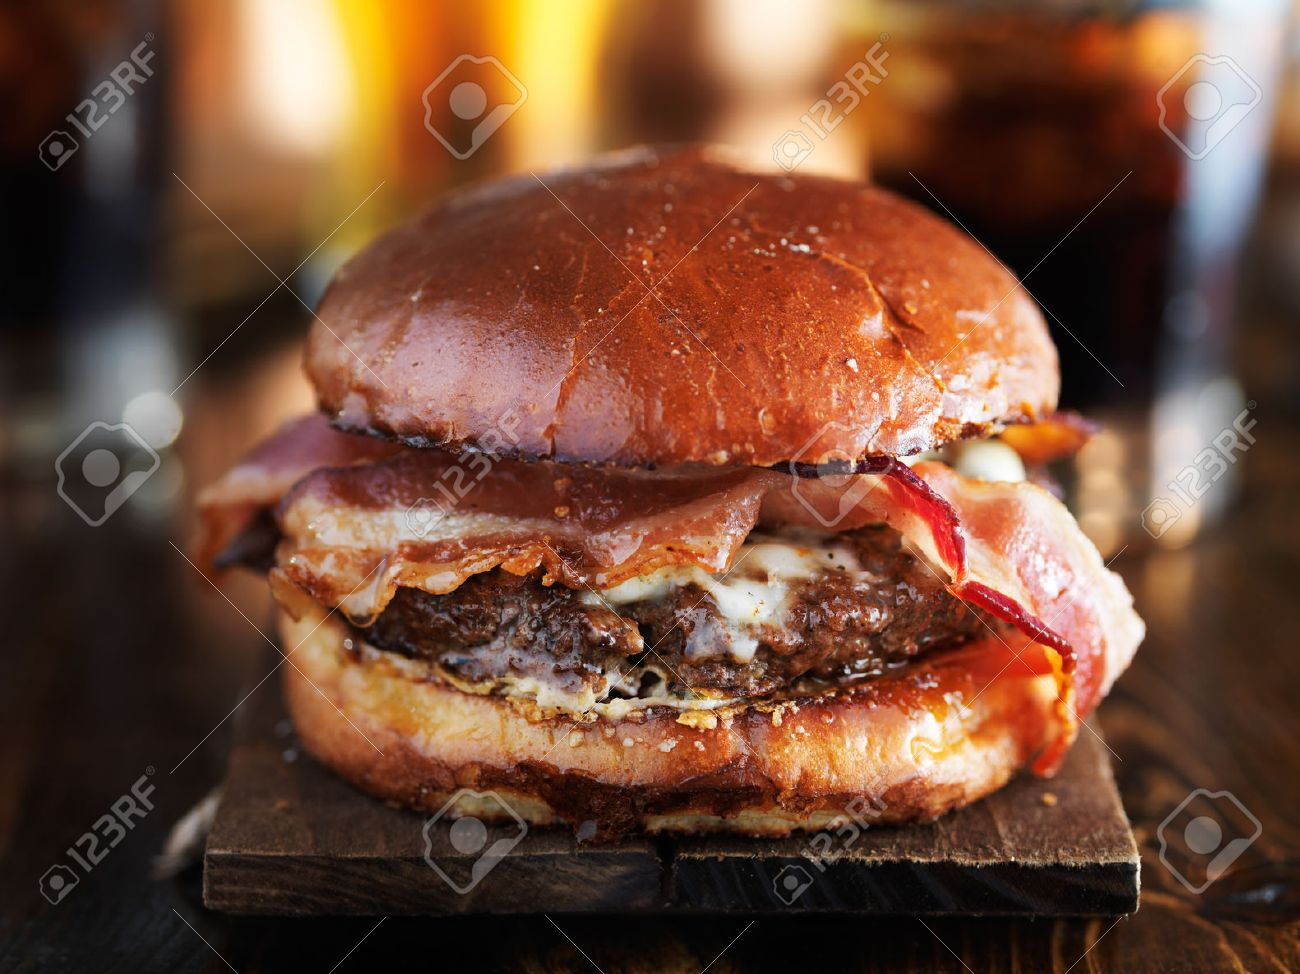 juicy gourmet cheeseburger with melted pepper jack and strips of crispy bacon - 52915939